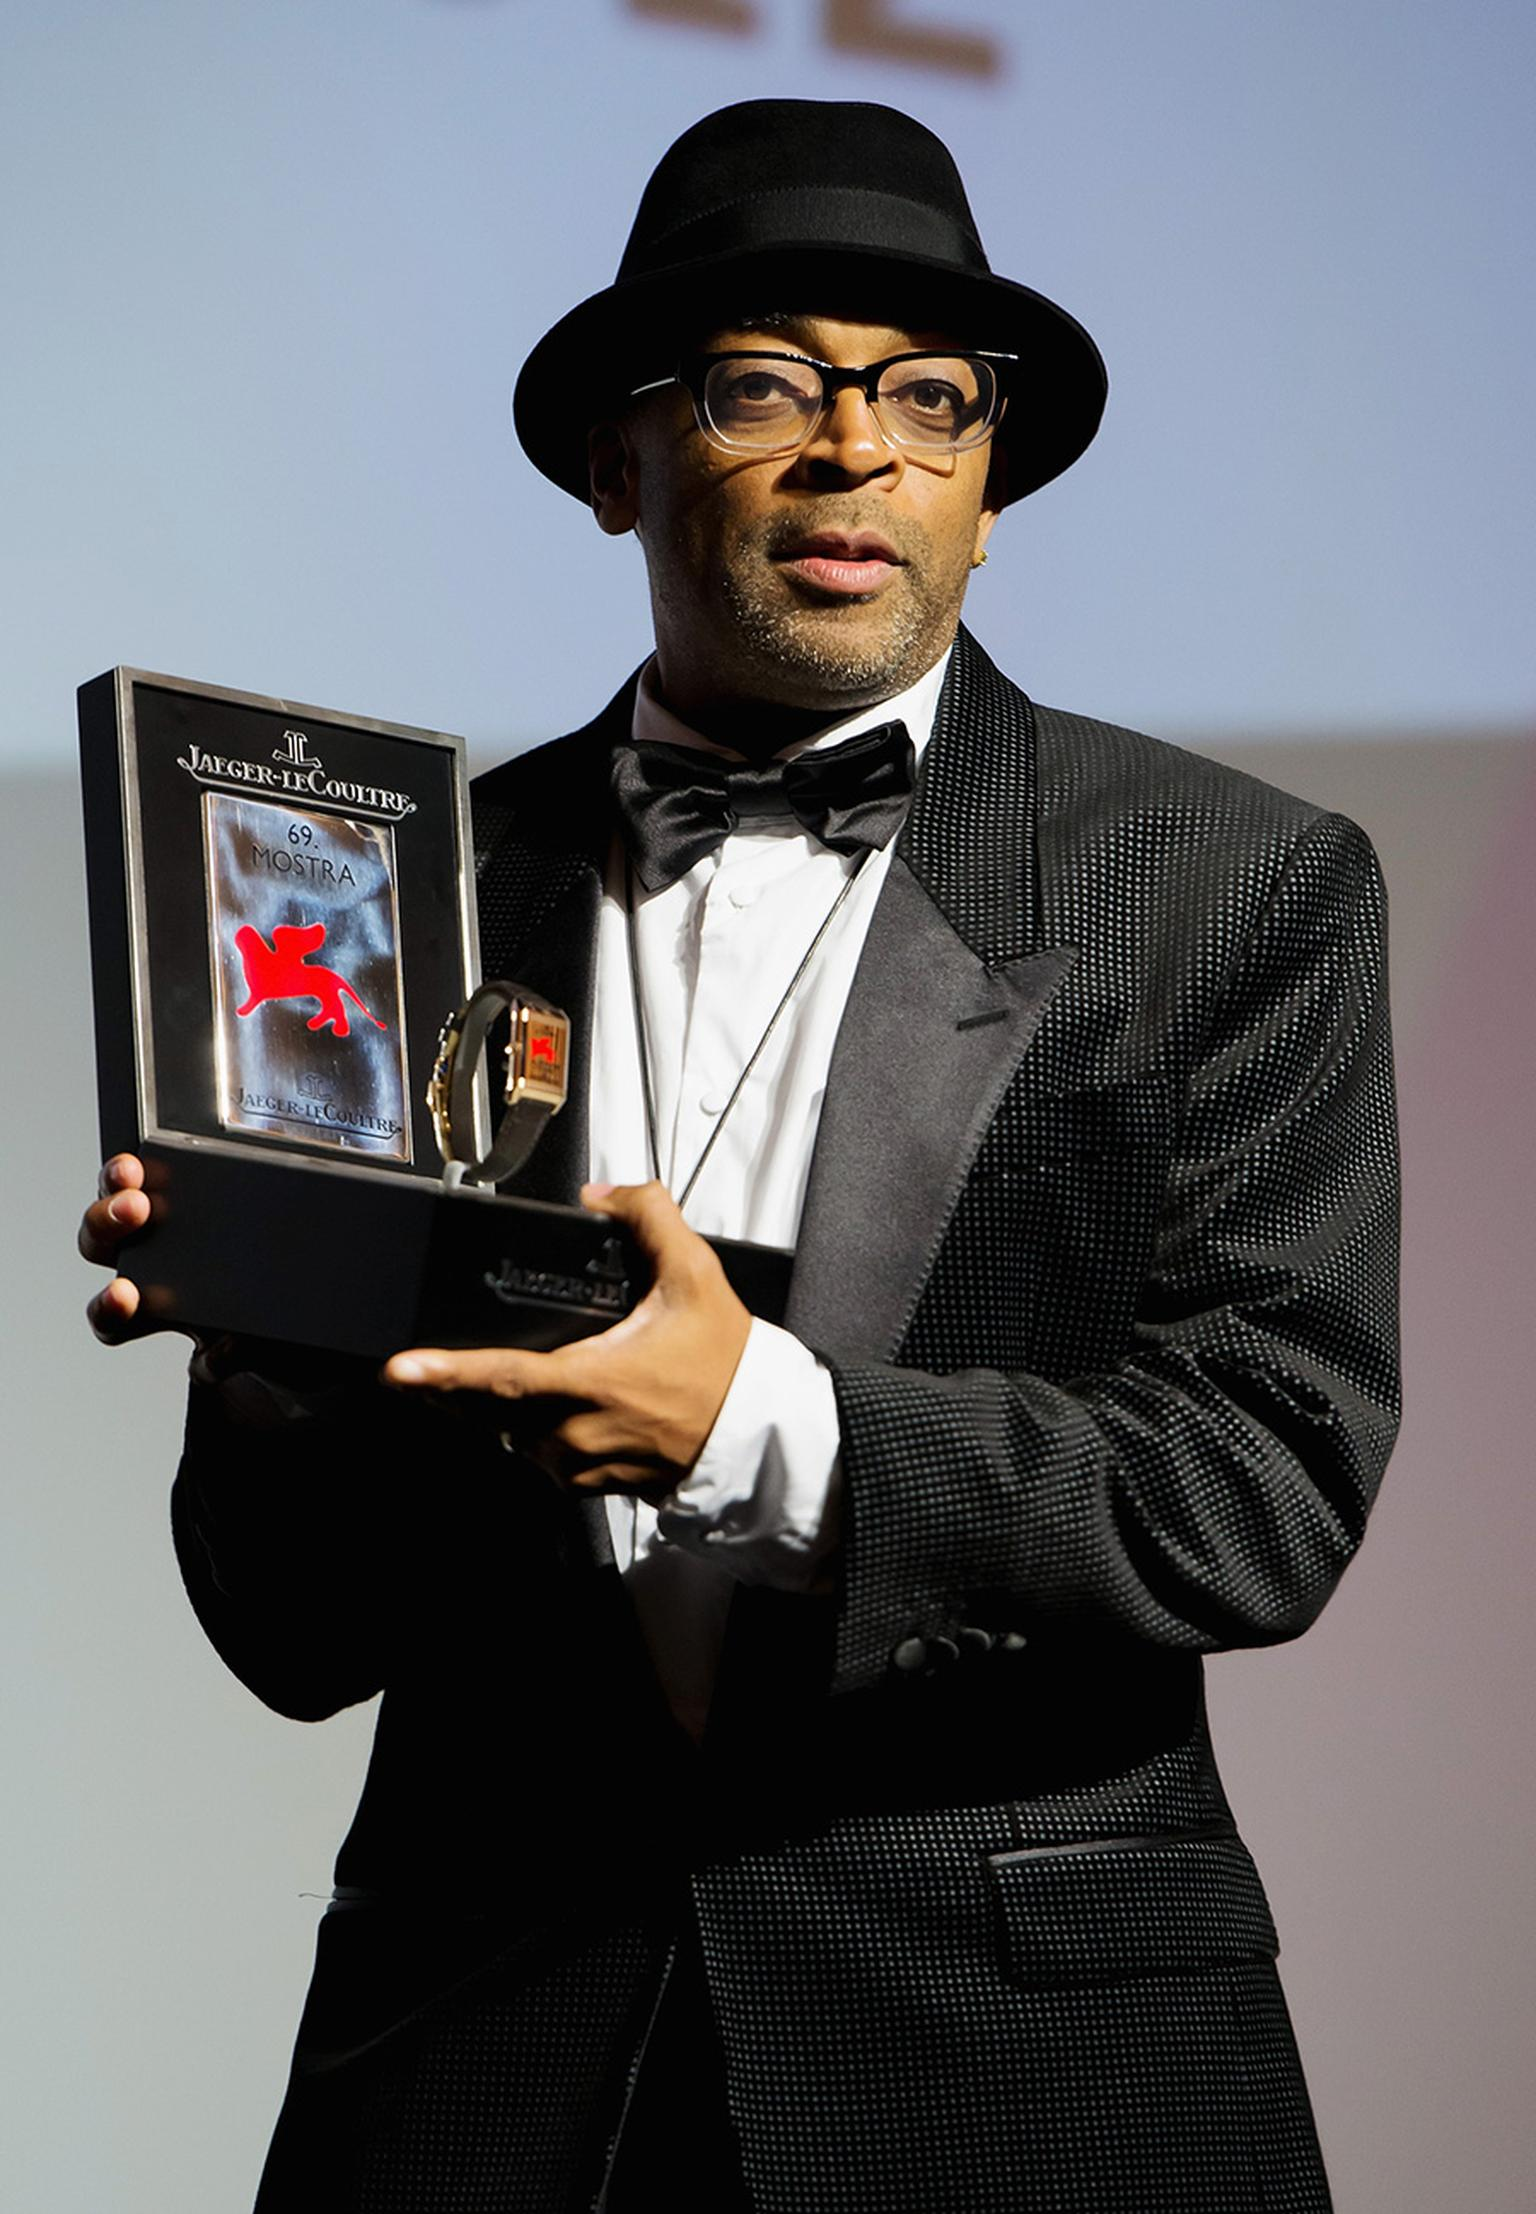 JLC-Director-Spike-Lee-speaks-on-stage-as-he-receives-the-Jaeger-Le-Coultre-Glory-To-The-Filmmaker-Award-during-the-69th-Venice-Film-Festival.jpg